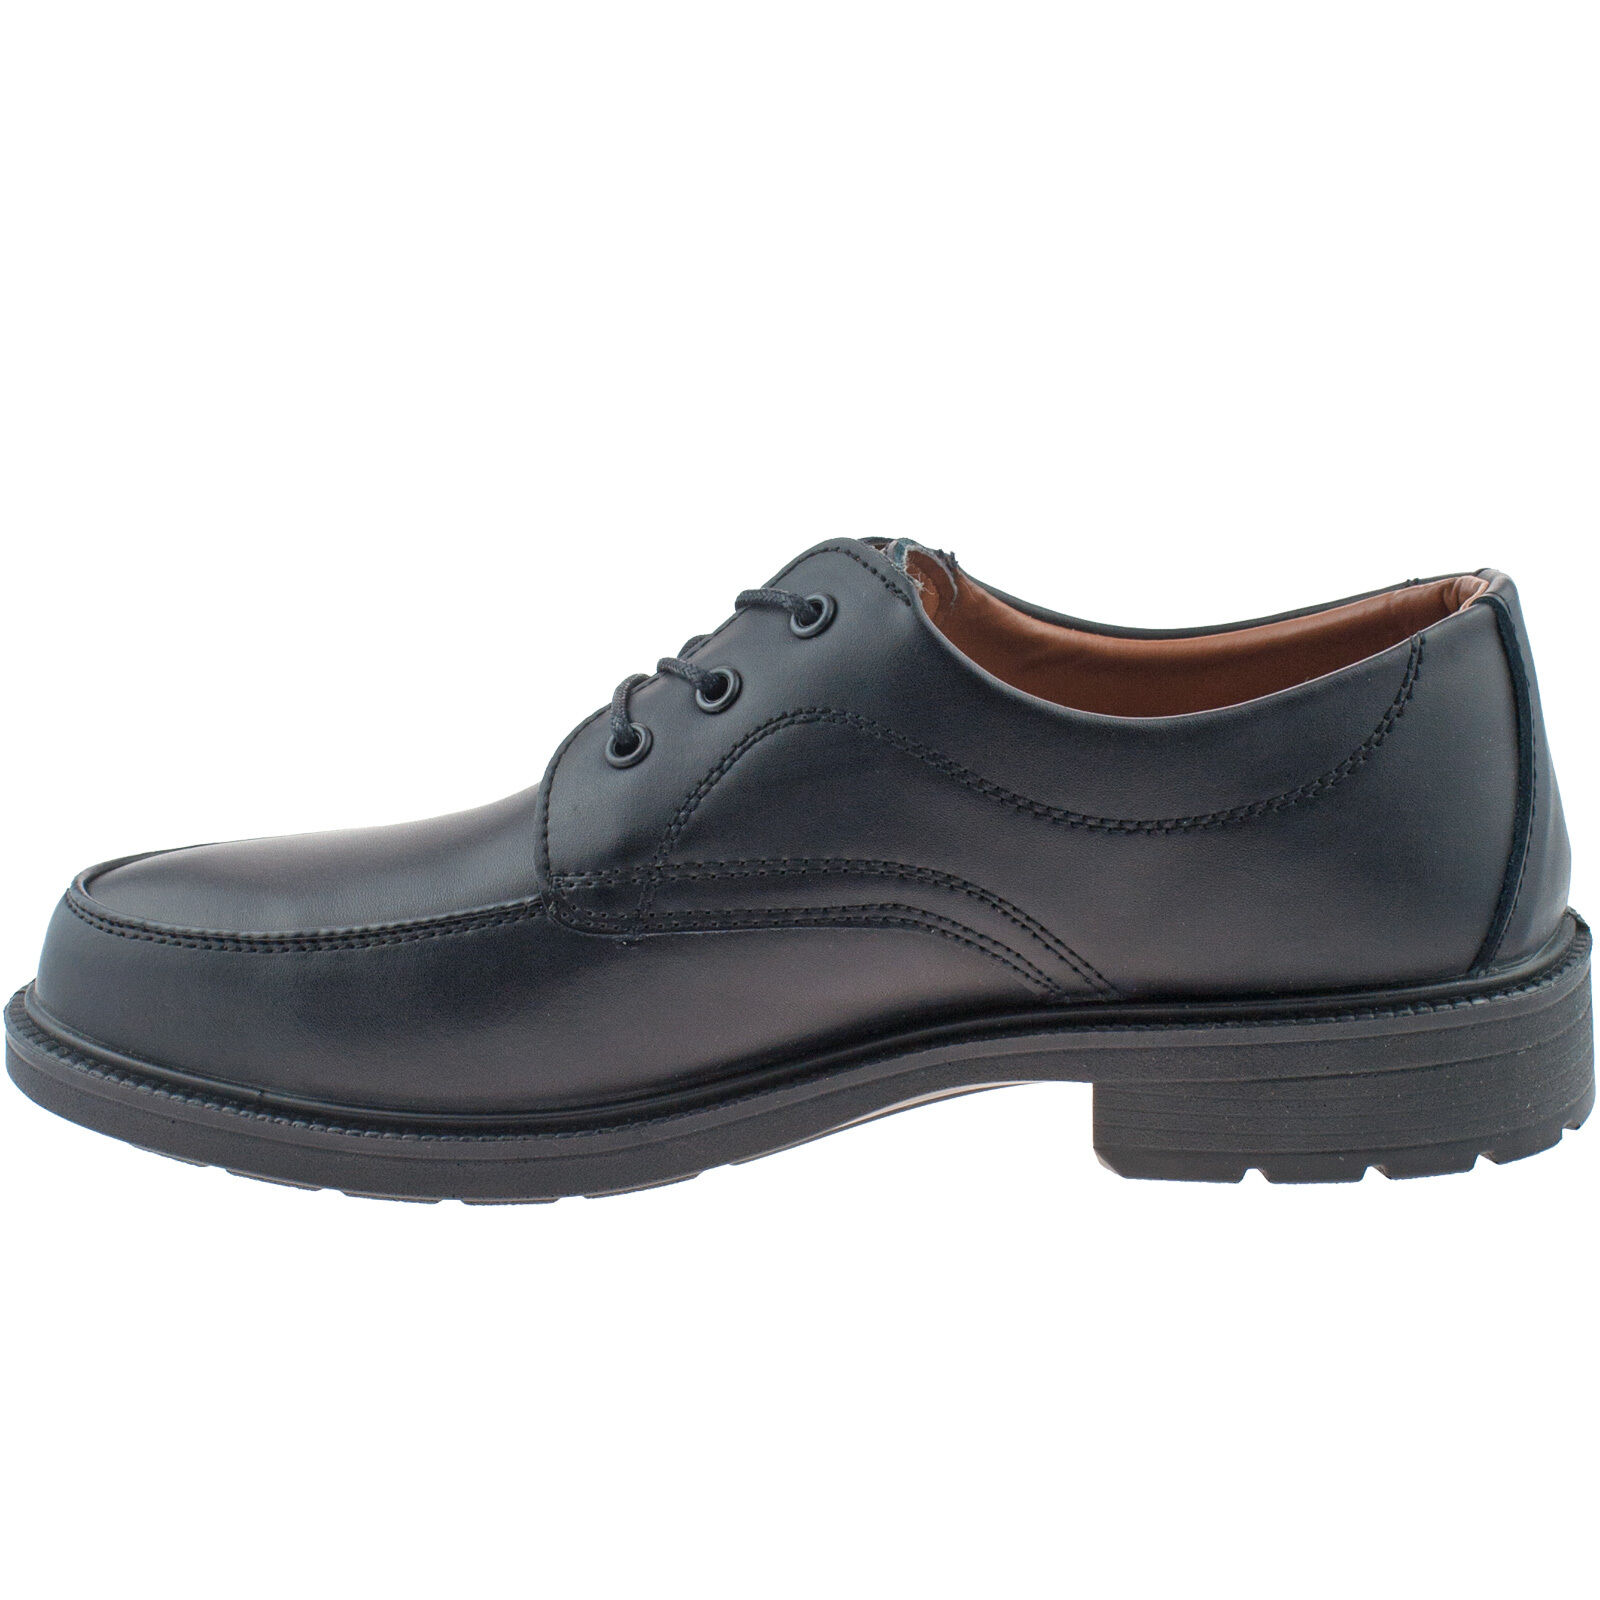 Mens Grafters Safety Smart Work Shoes Black Leather Slip-on Size 6-13 UK